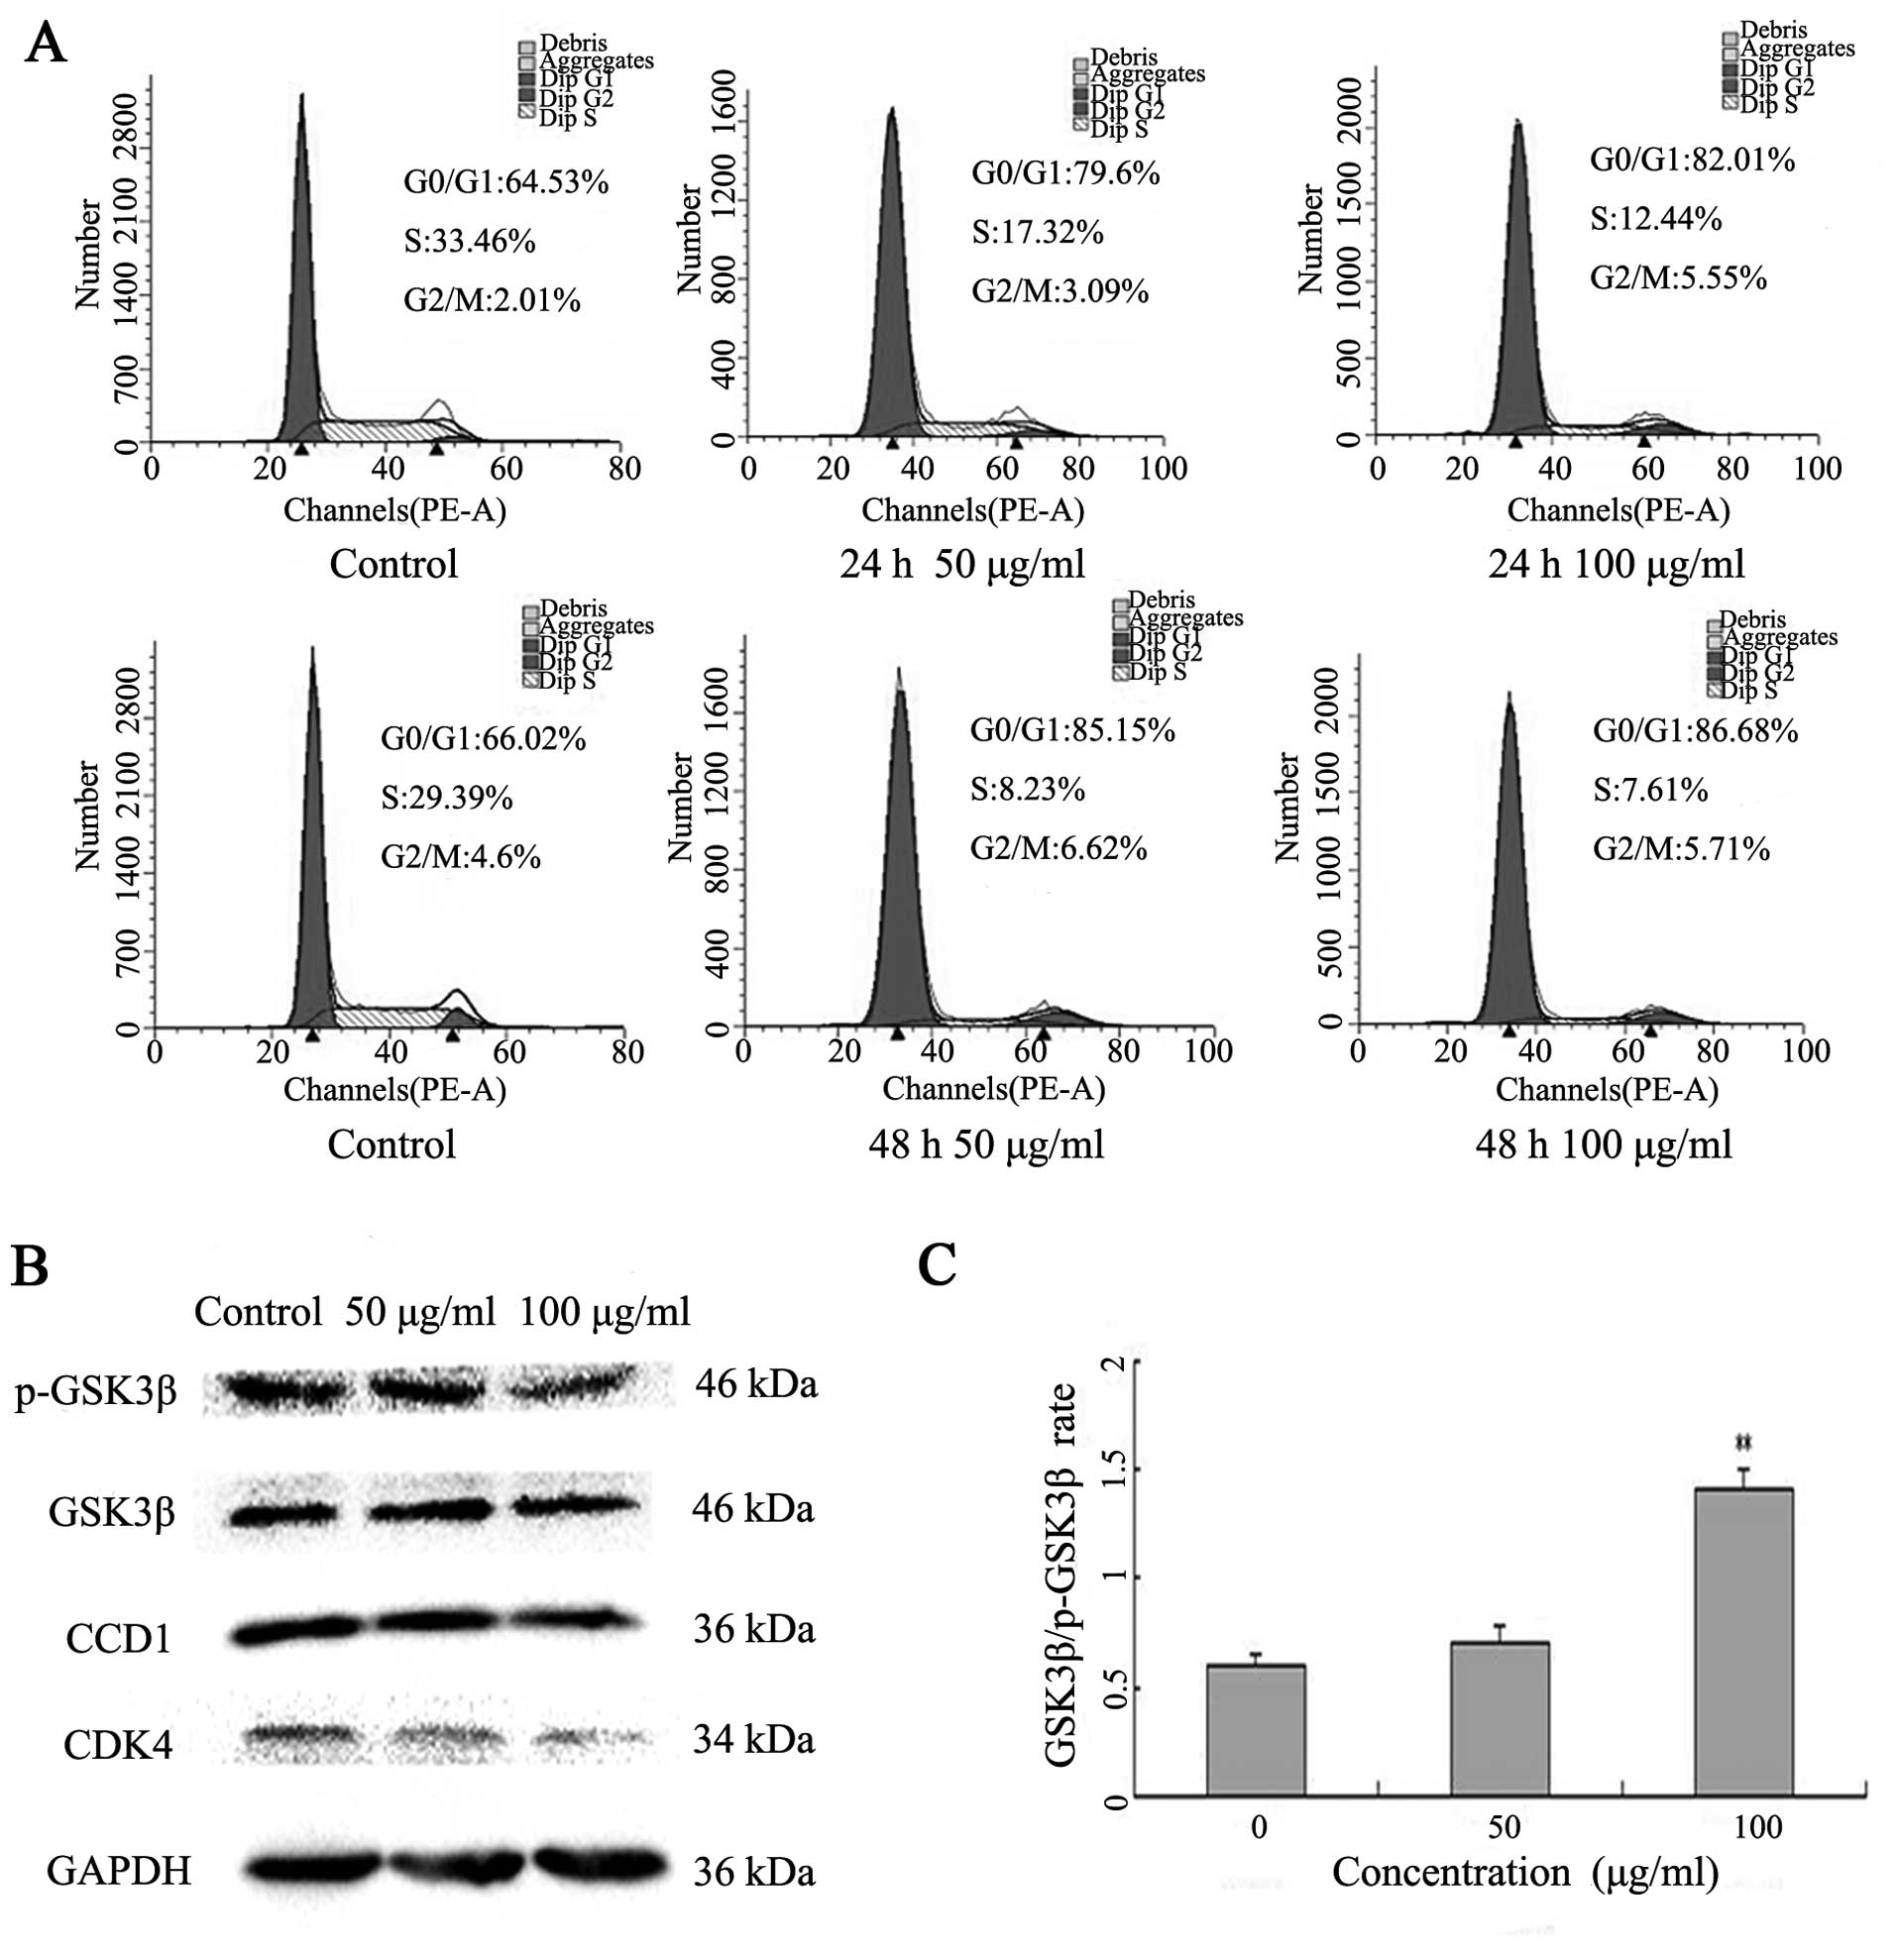 latcripin 13 domain induces apoptosis and cell cycle arrest at the